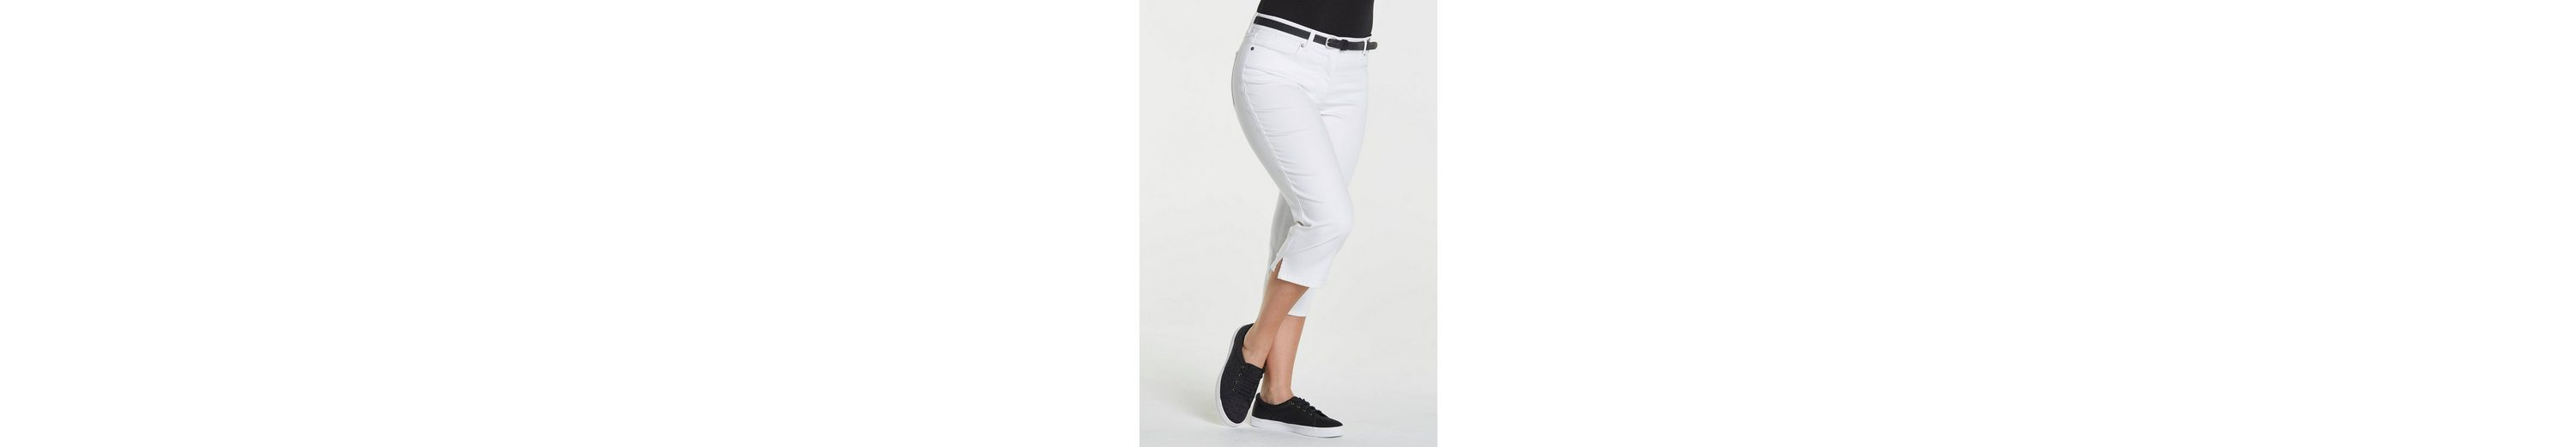 LauRie 5-Pocket-Hose Sadie, Regular Hosen